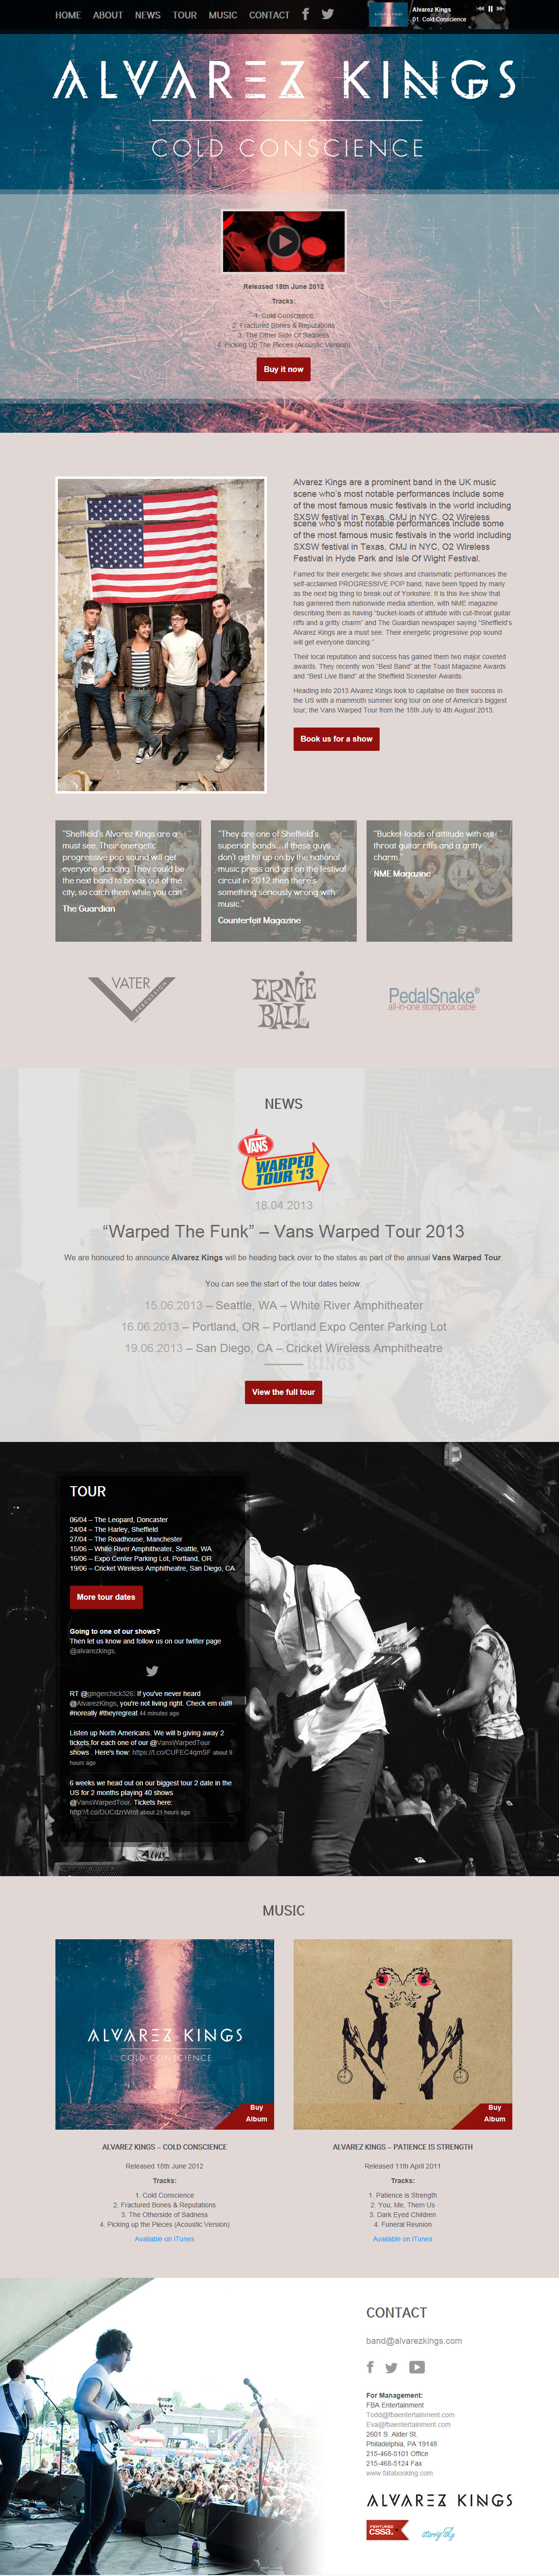 Alvarez Kings Website Screenshot